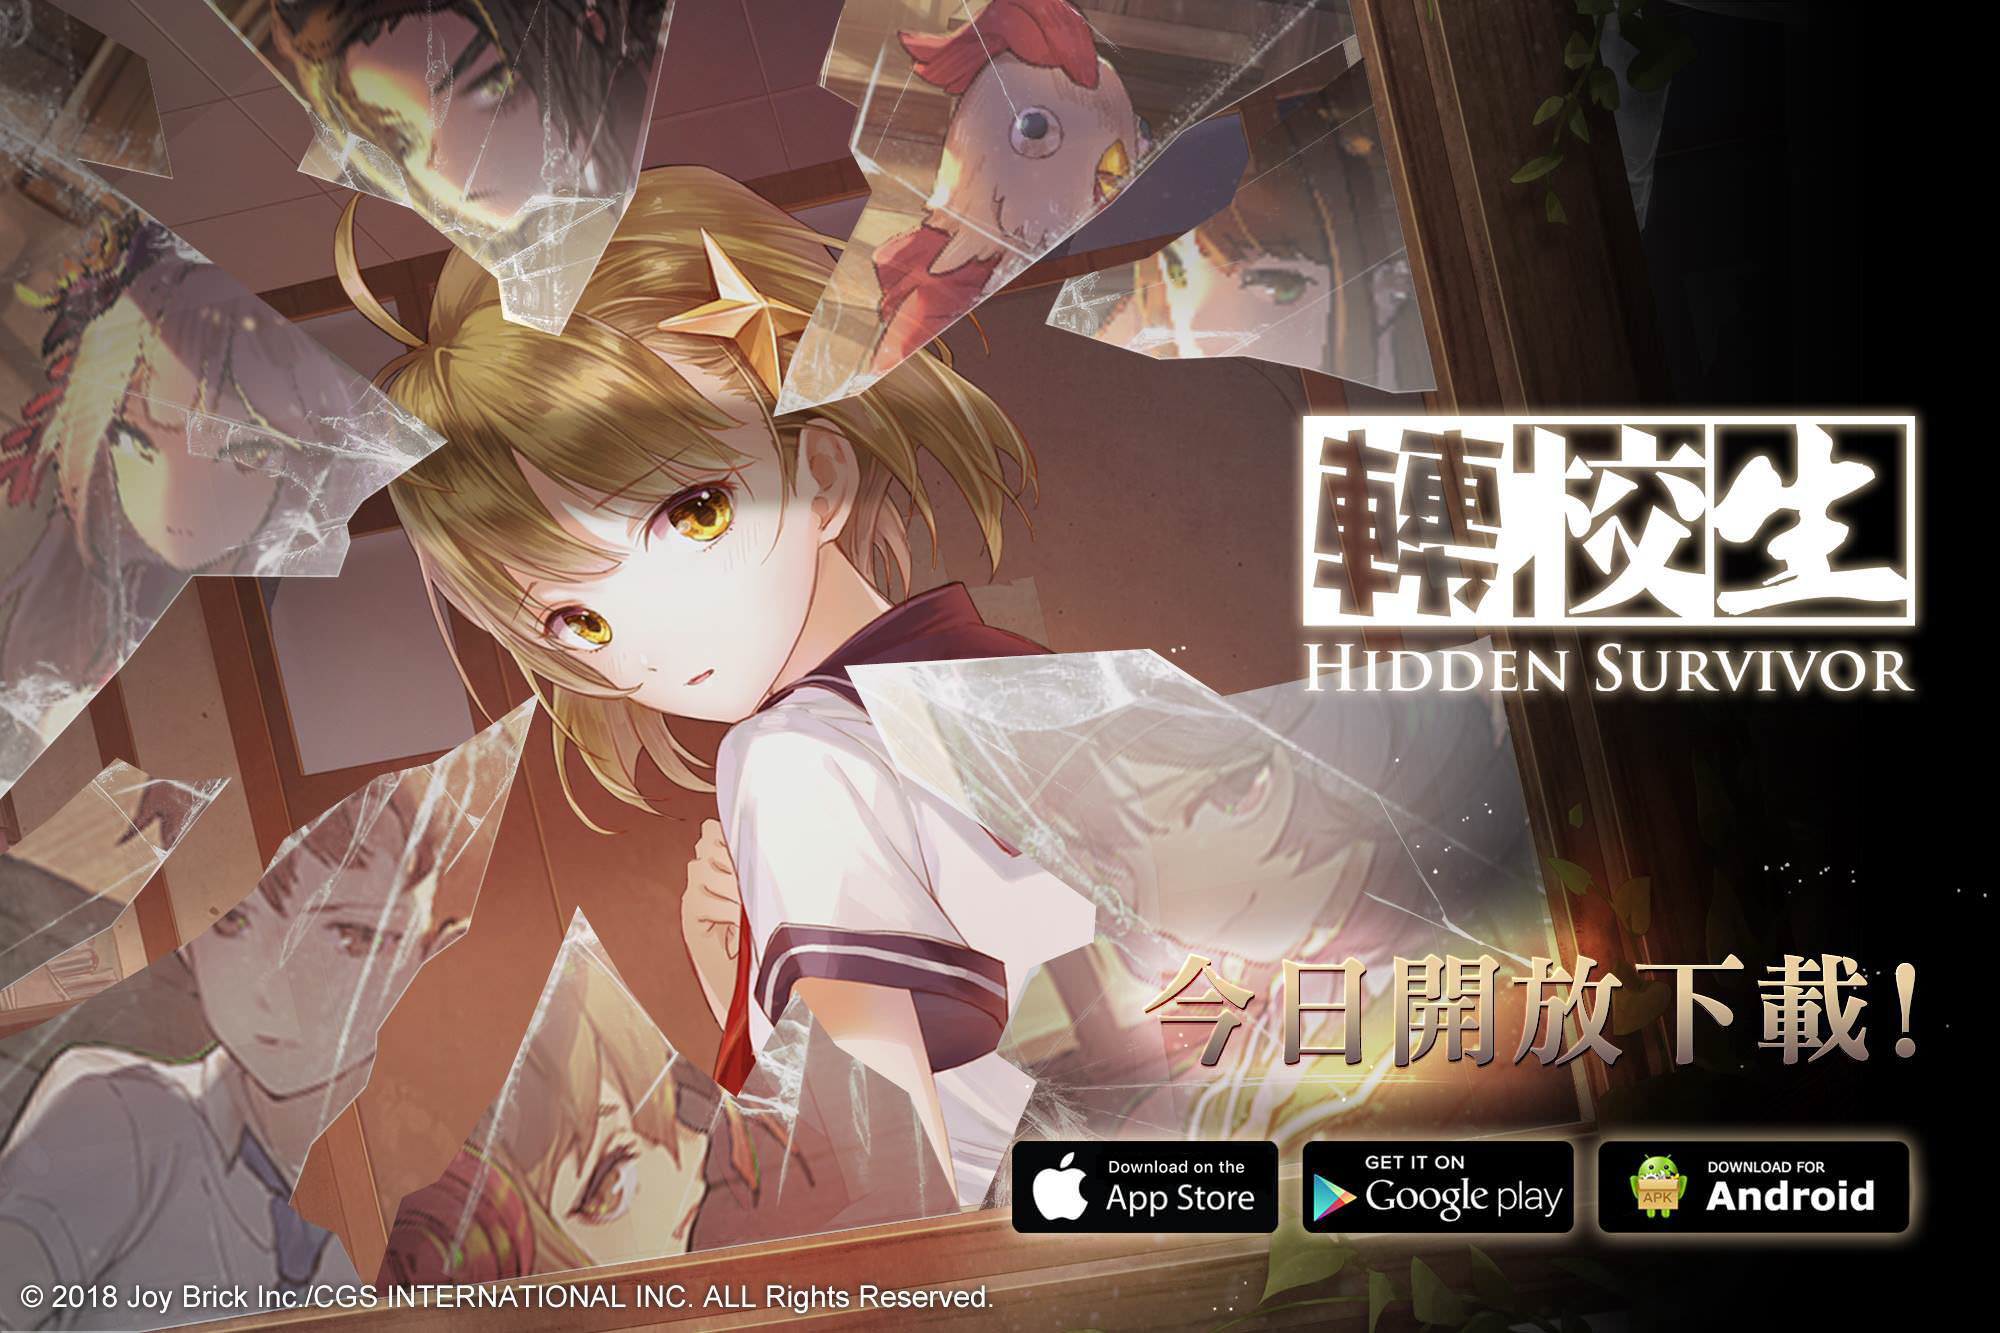 Hidden Survivor is an intriguing hide and seek survival game with an anime-styled aesthetic